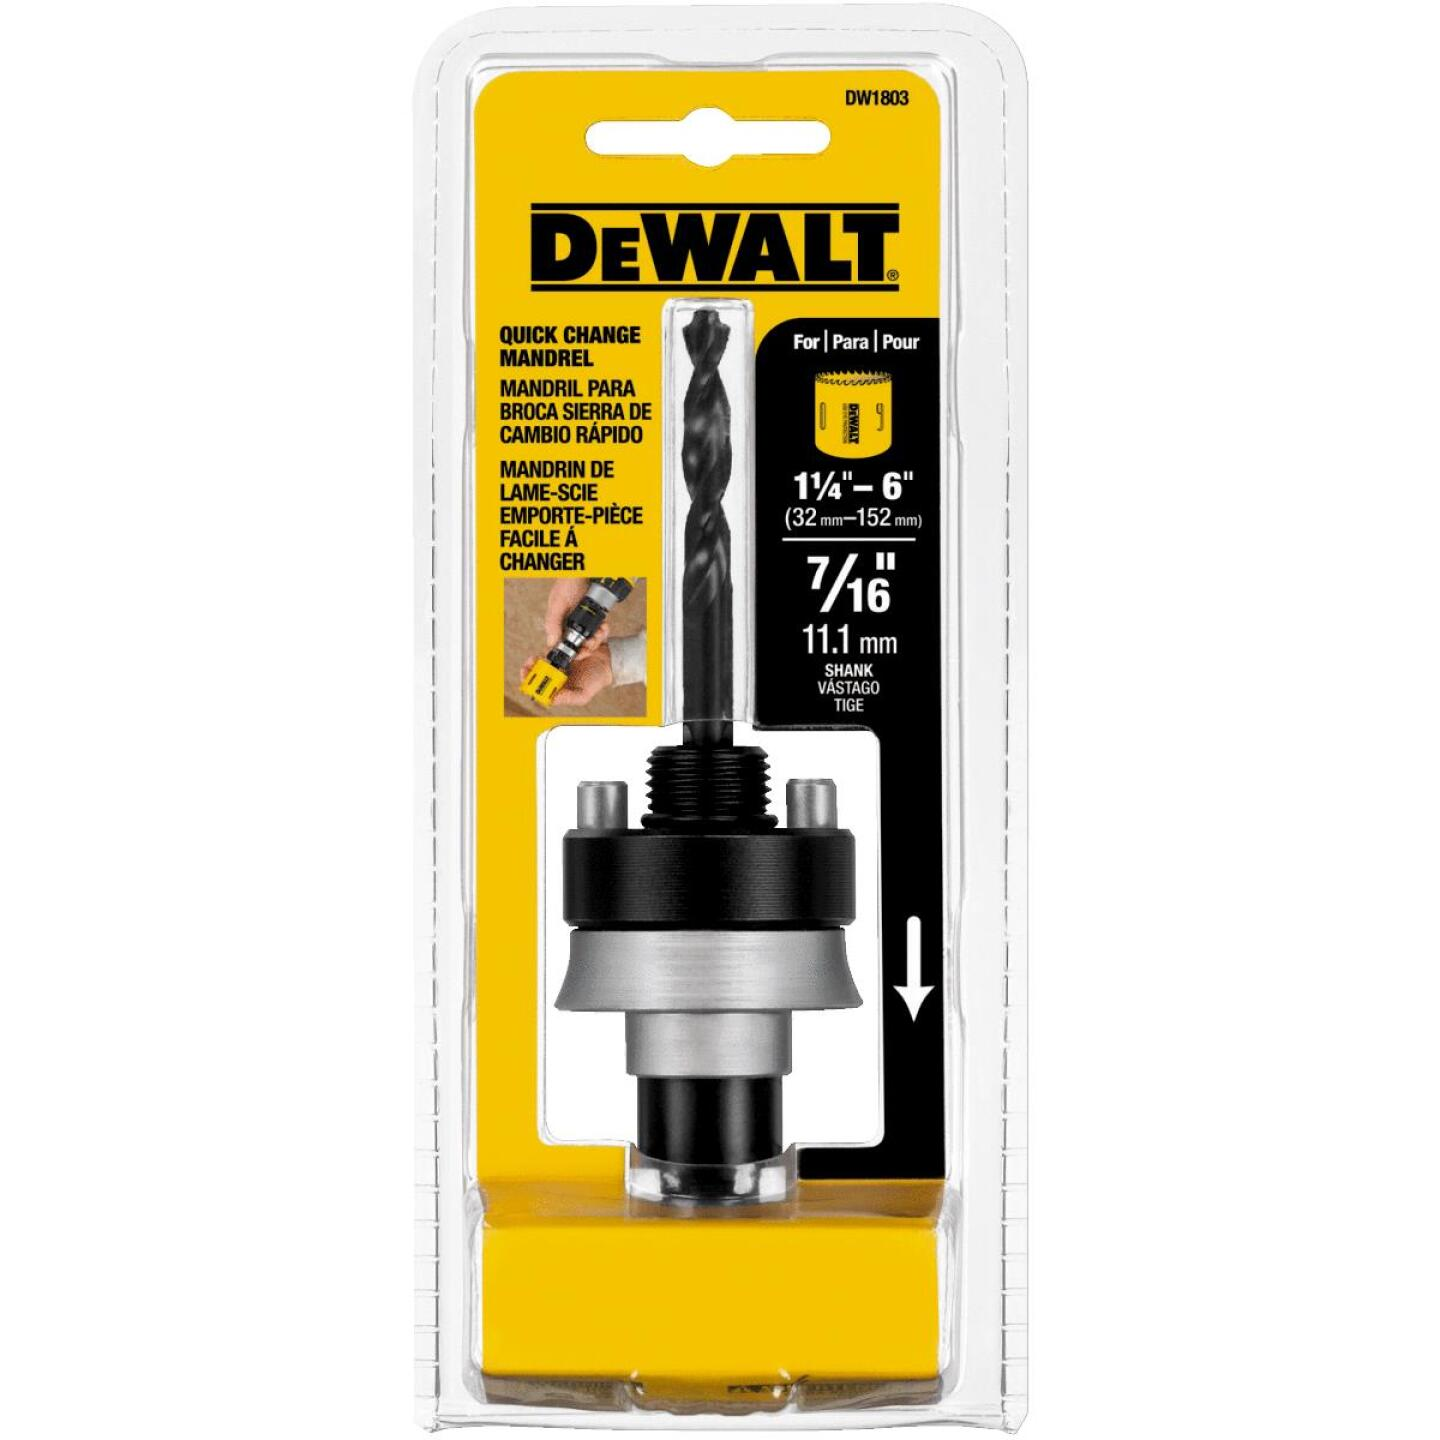 DeWalt 7/16 In. Hex Shank Hole Saw Mandrel Fits Hole Saws Fits Hole Saws 1-1/4 In. to 6 In. Image 4